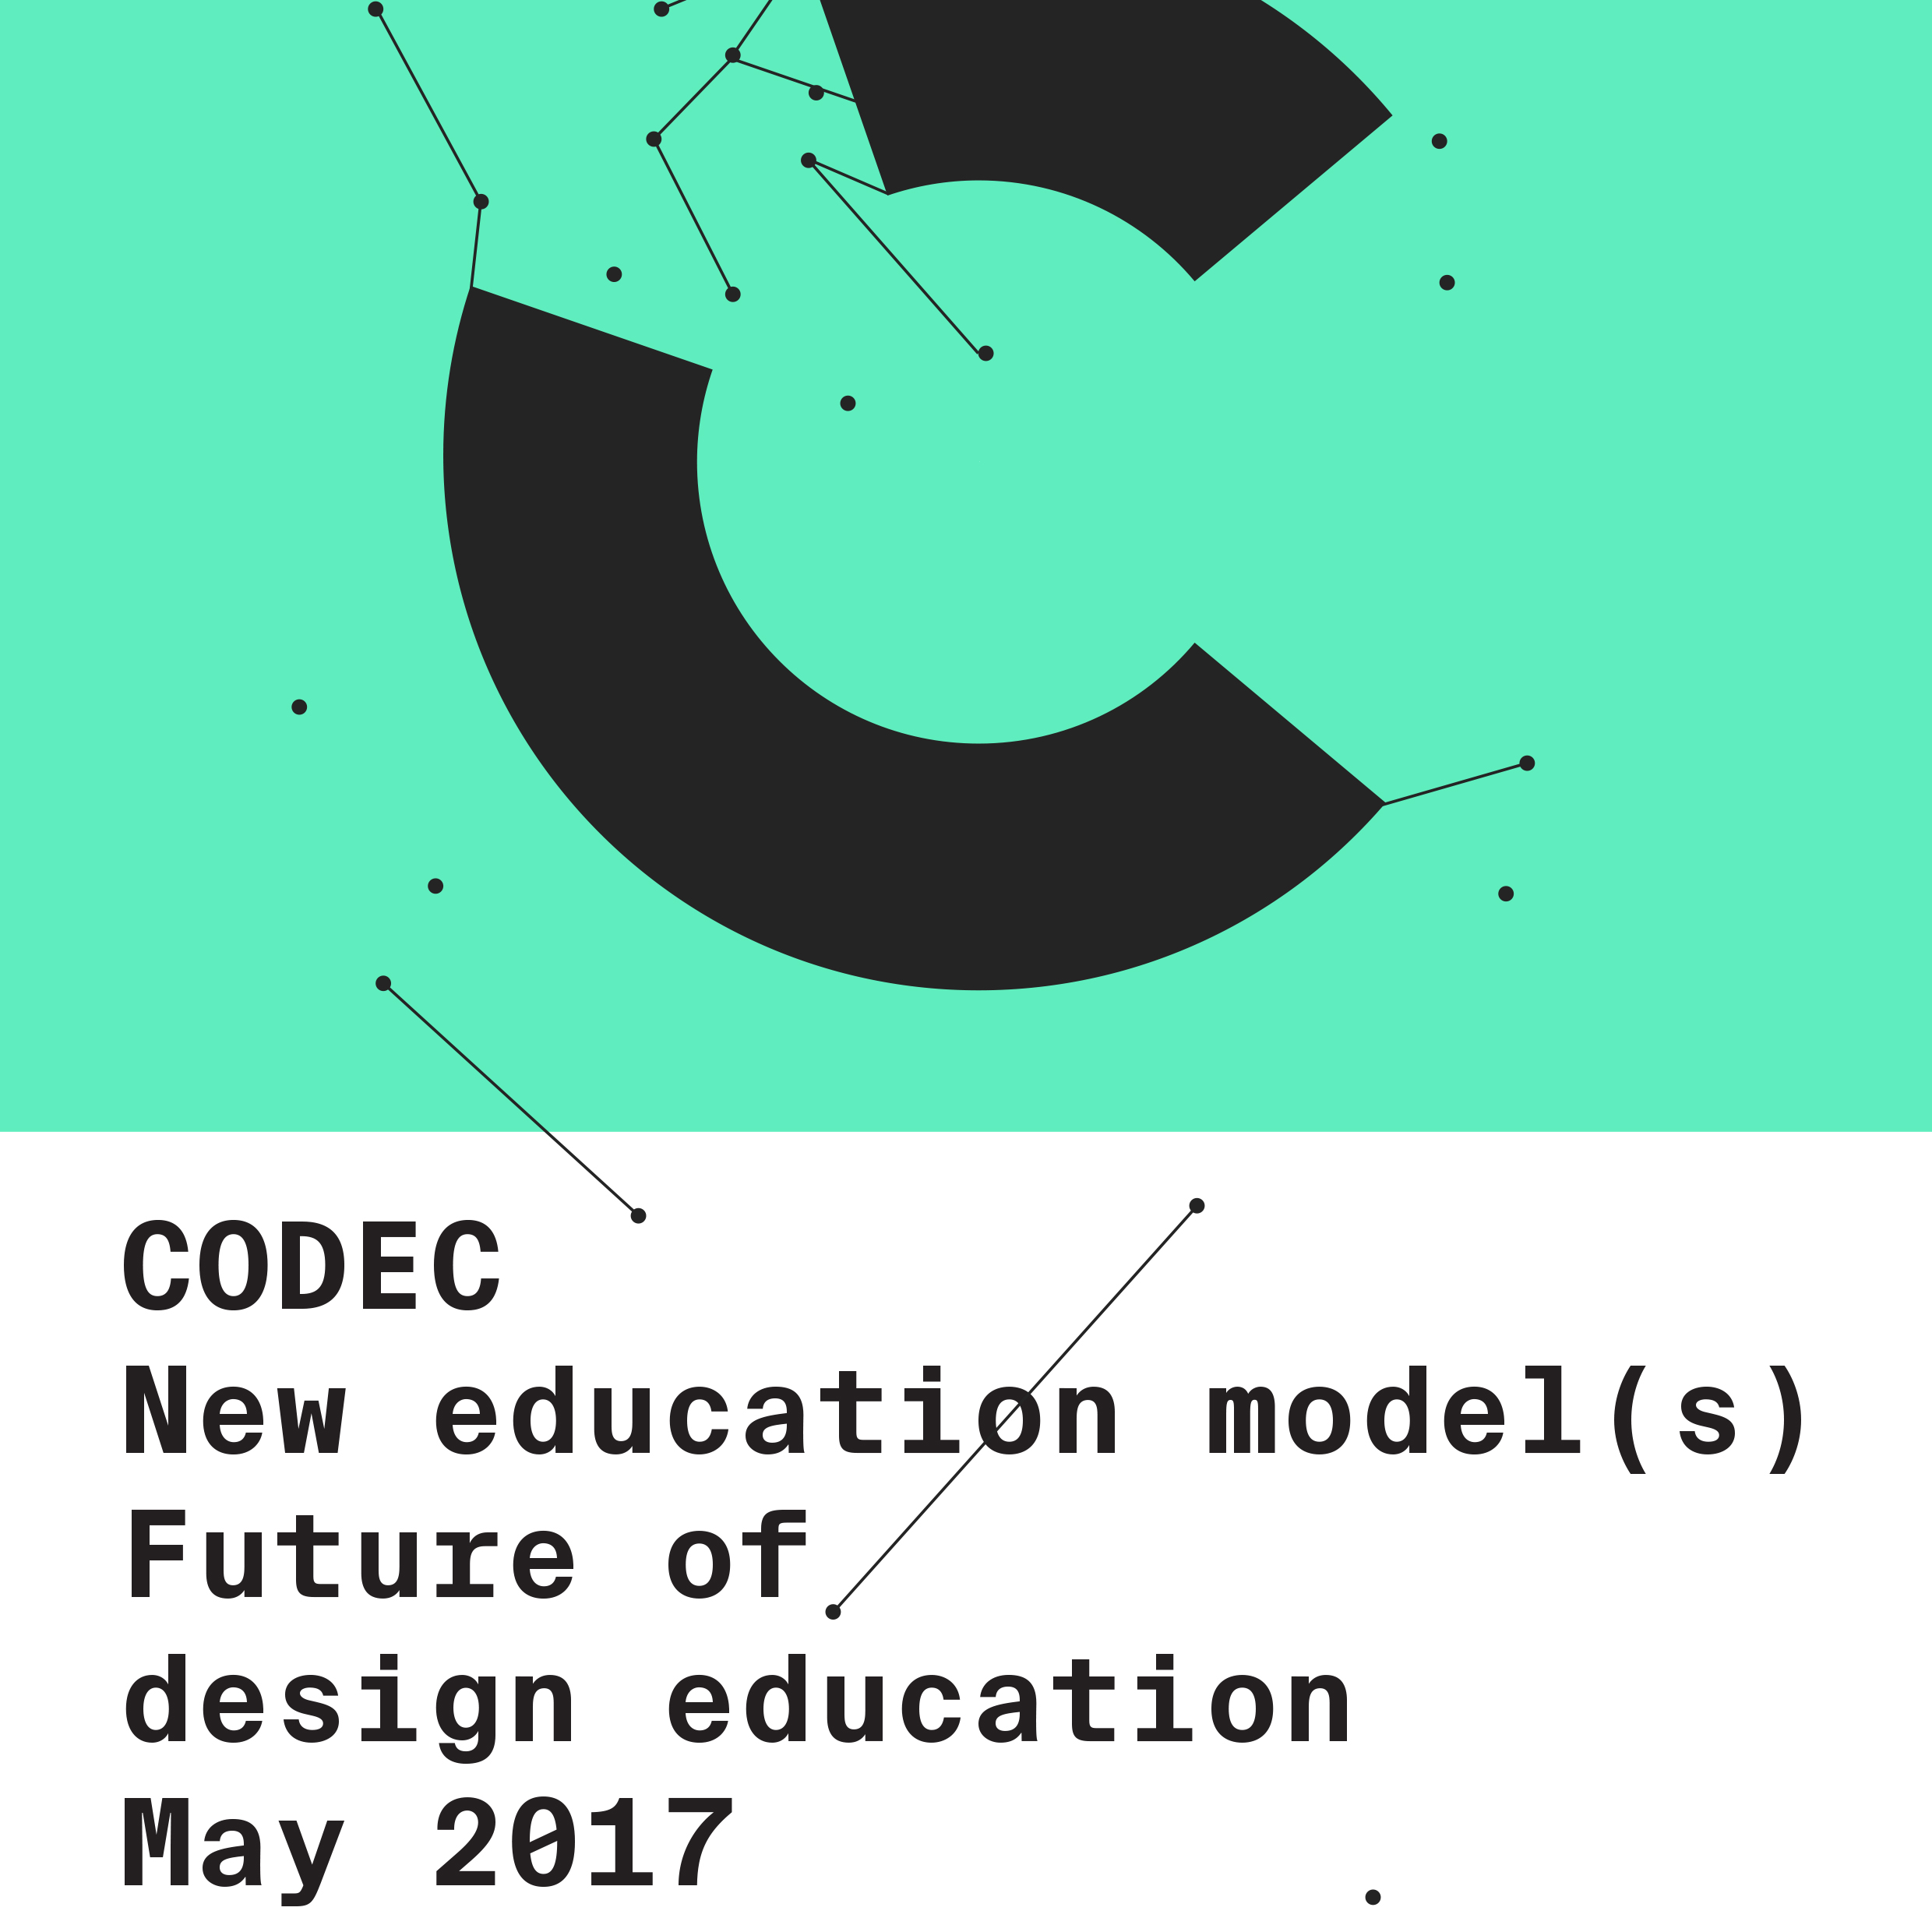 New_education_models_CODEC.jpg